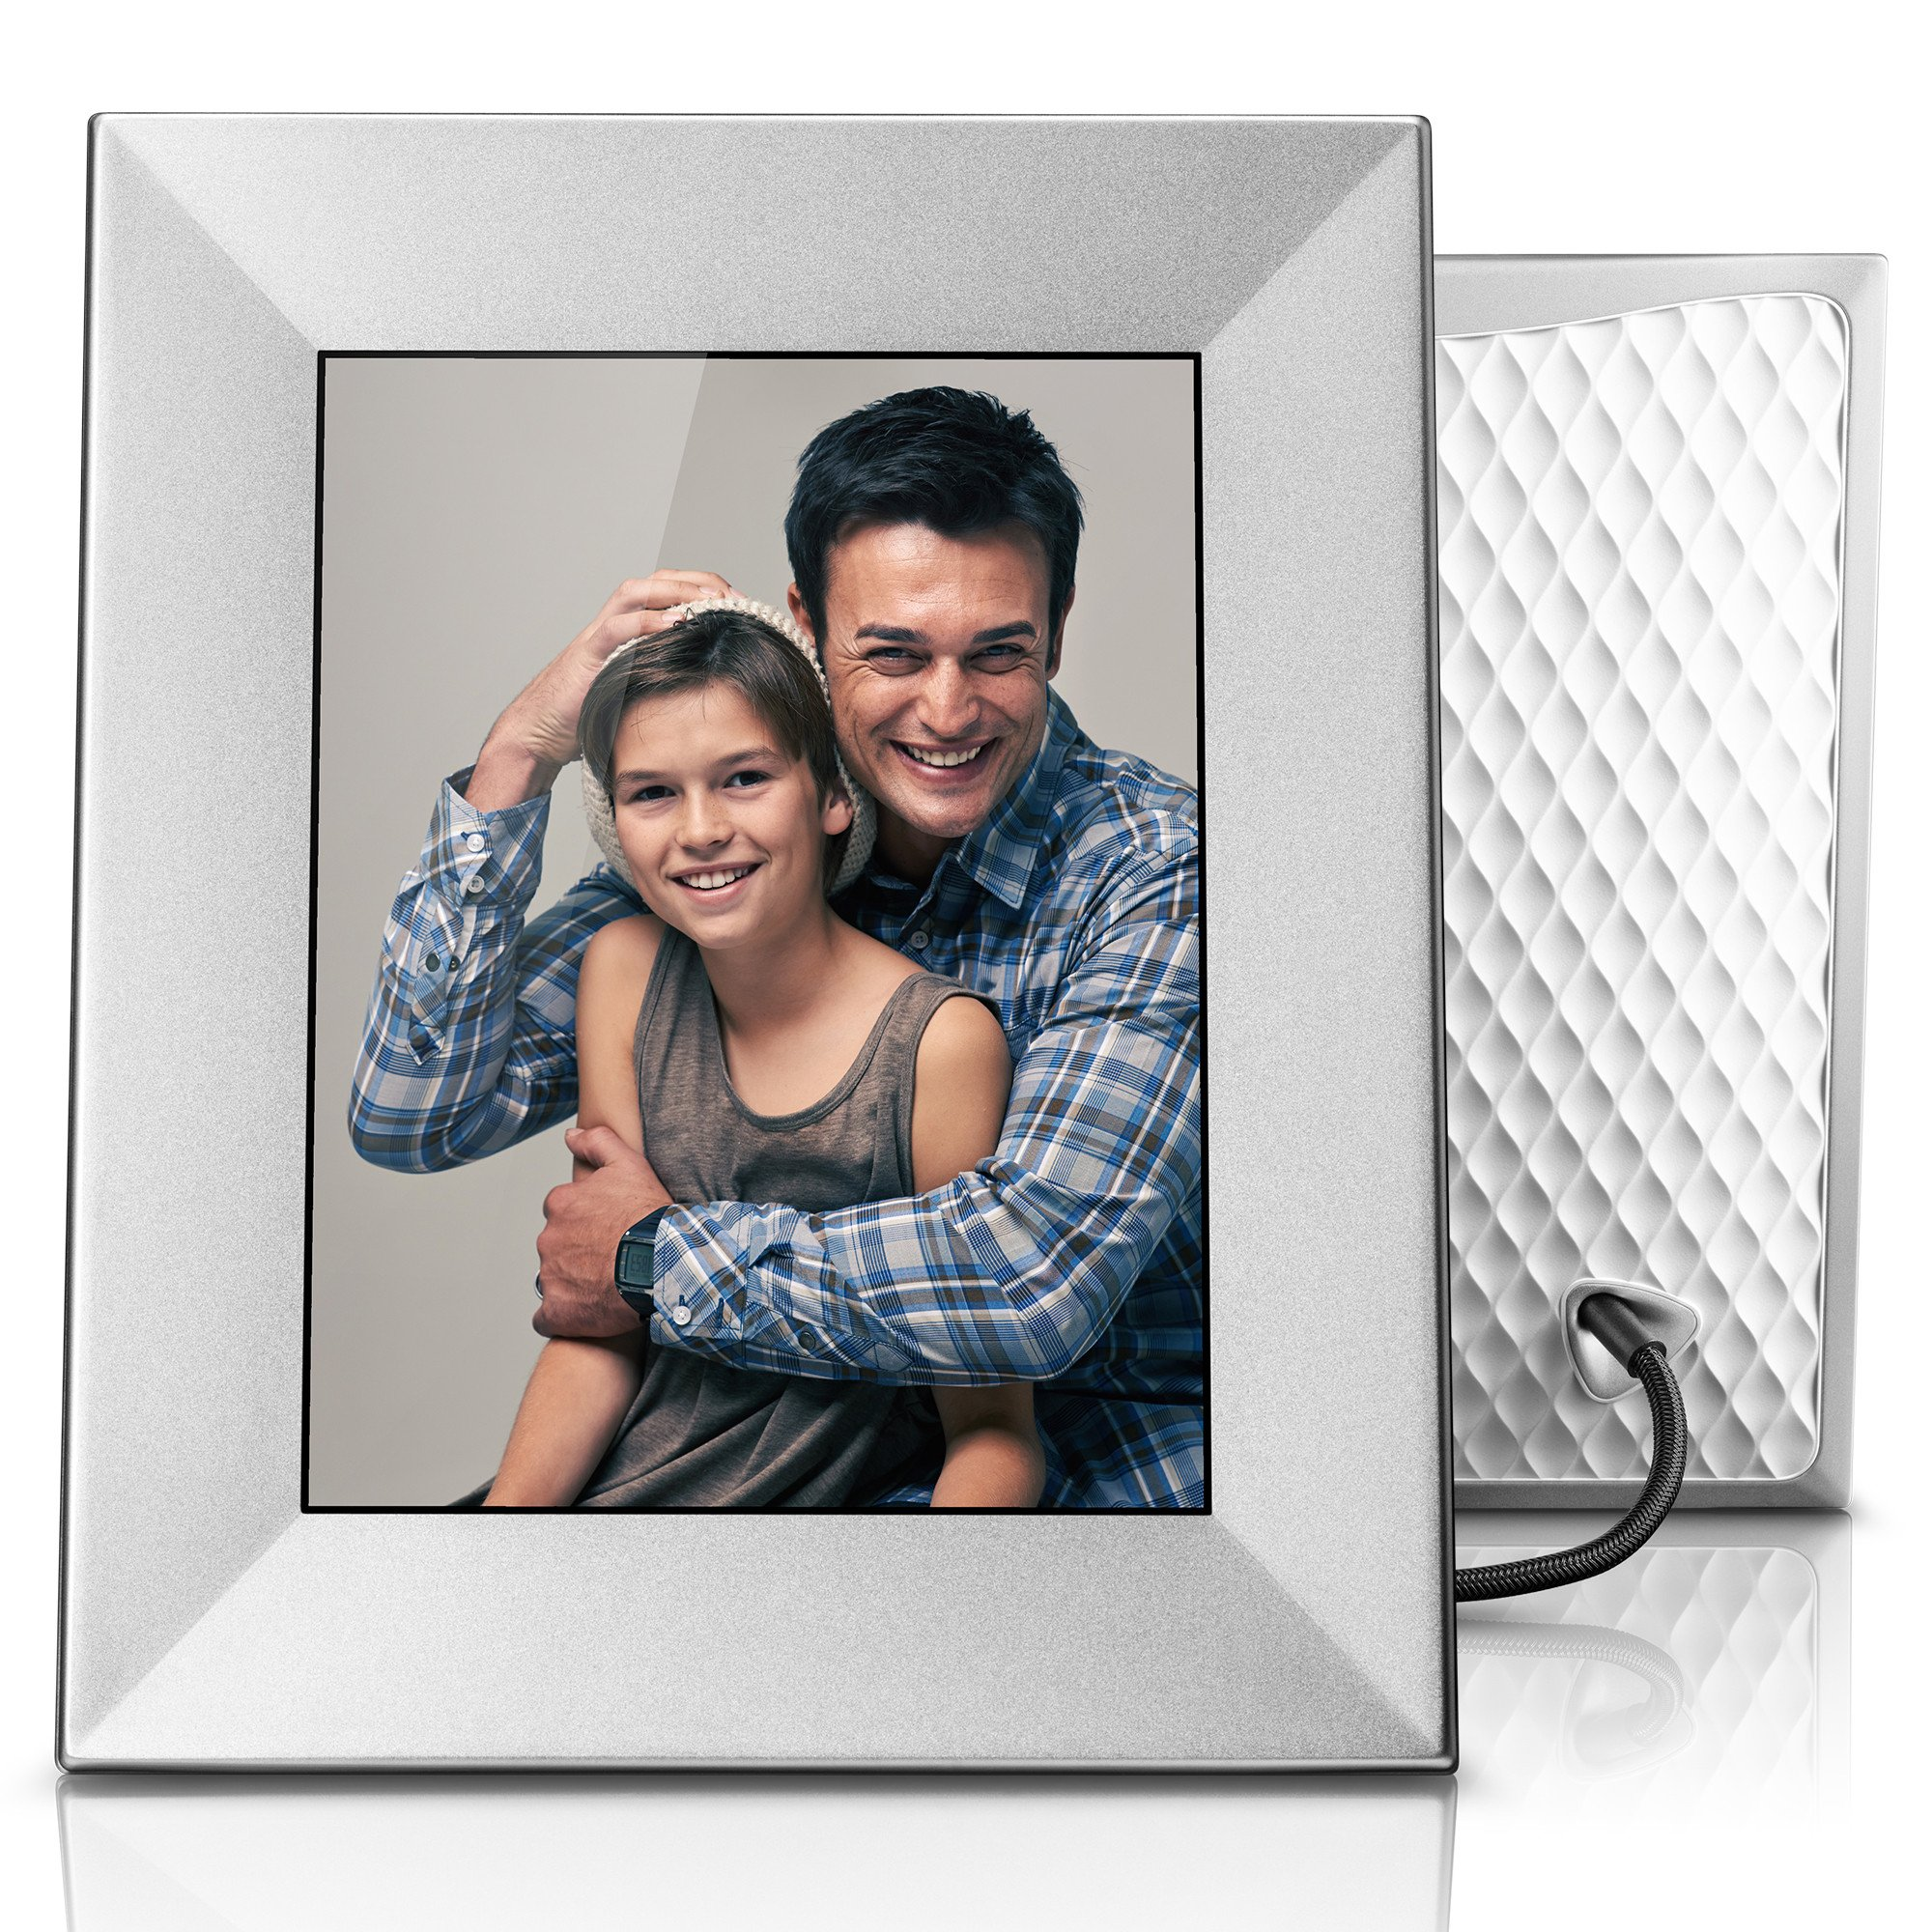 Nix Nixplay Nixplay Iris Wifi Cloud Digital Photo Frame Rakutencom